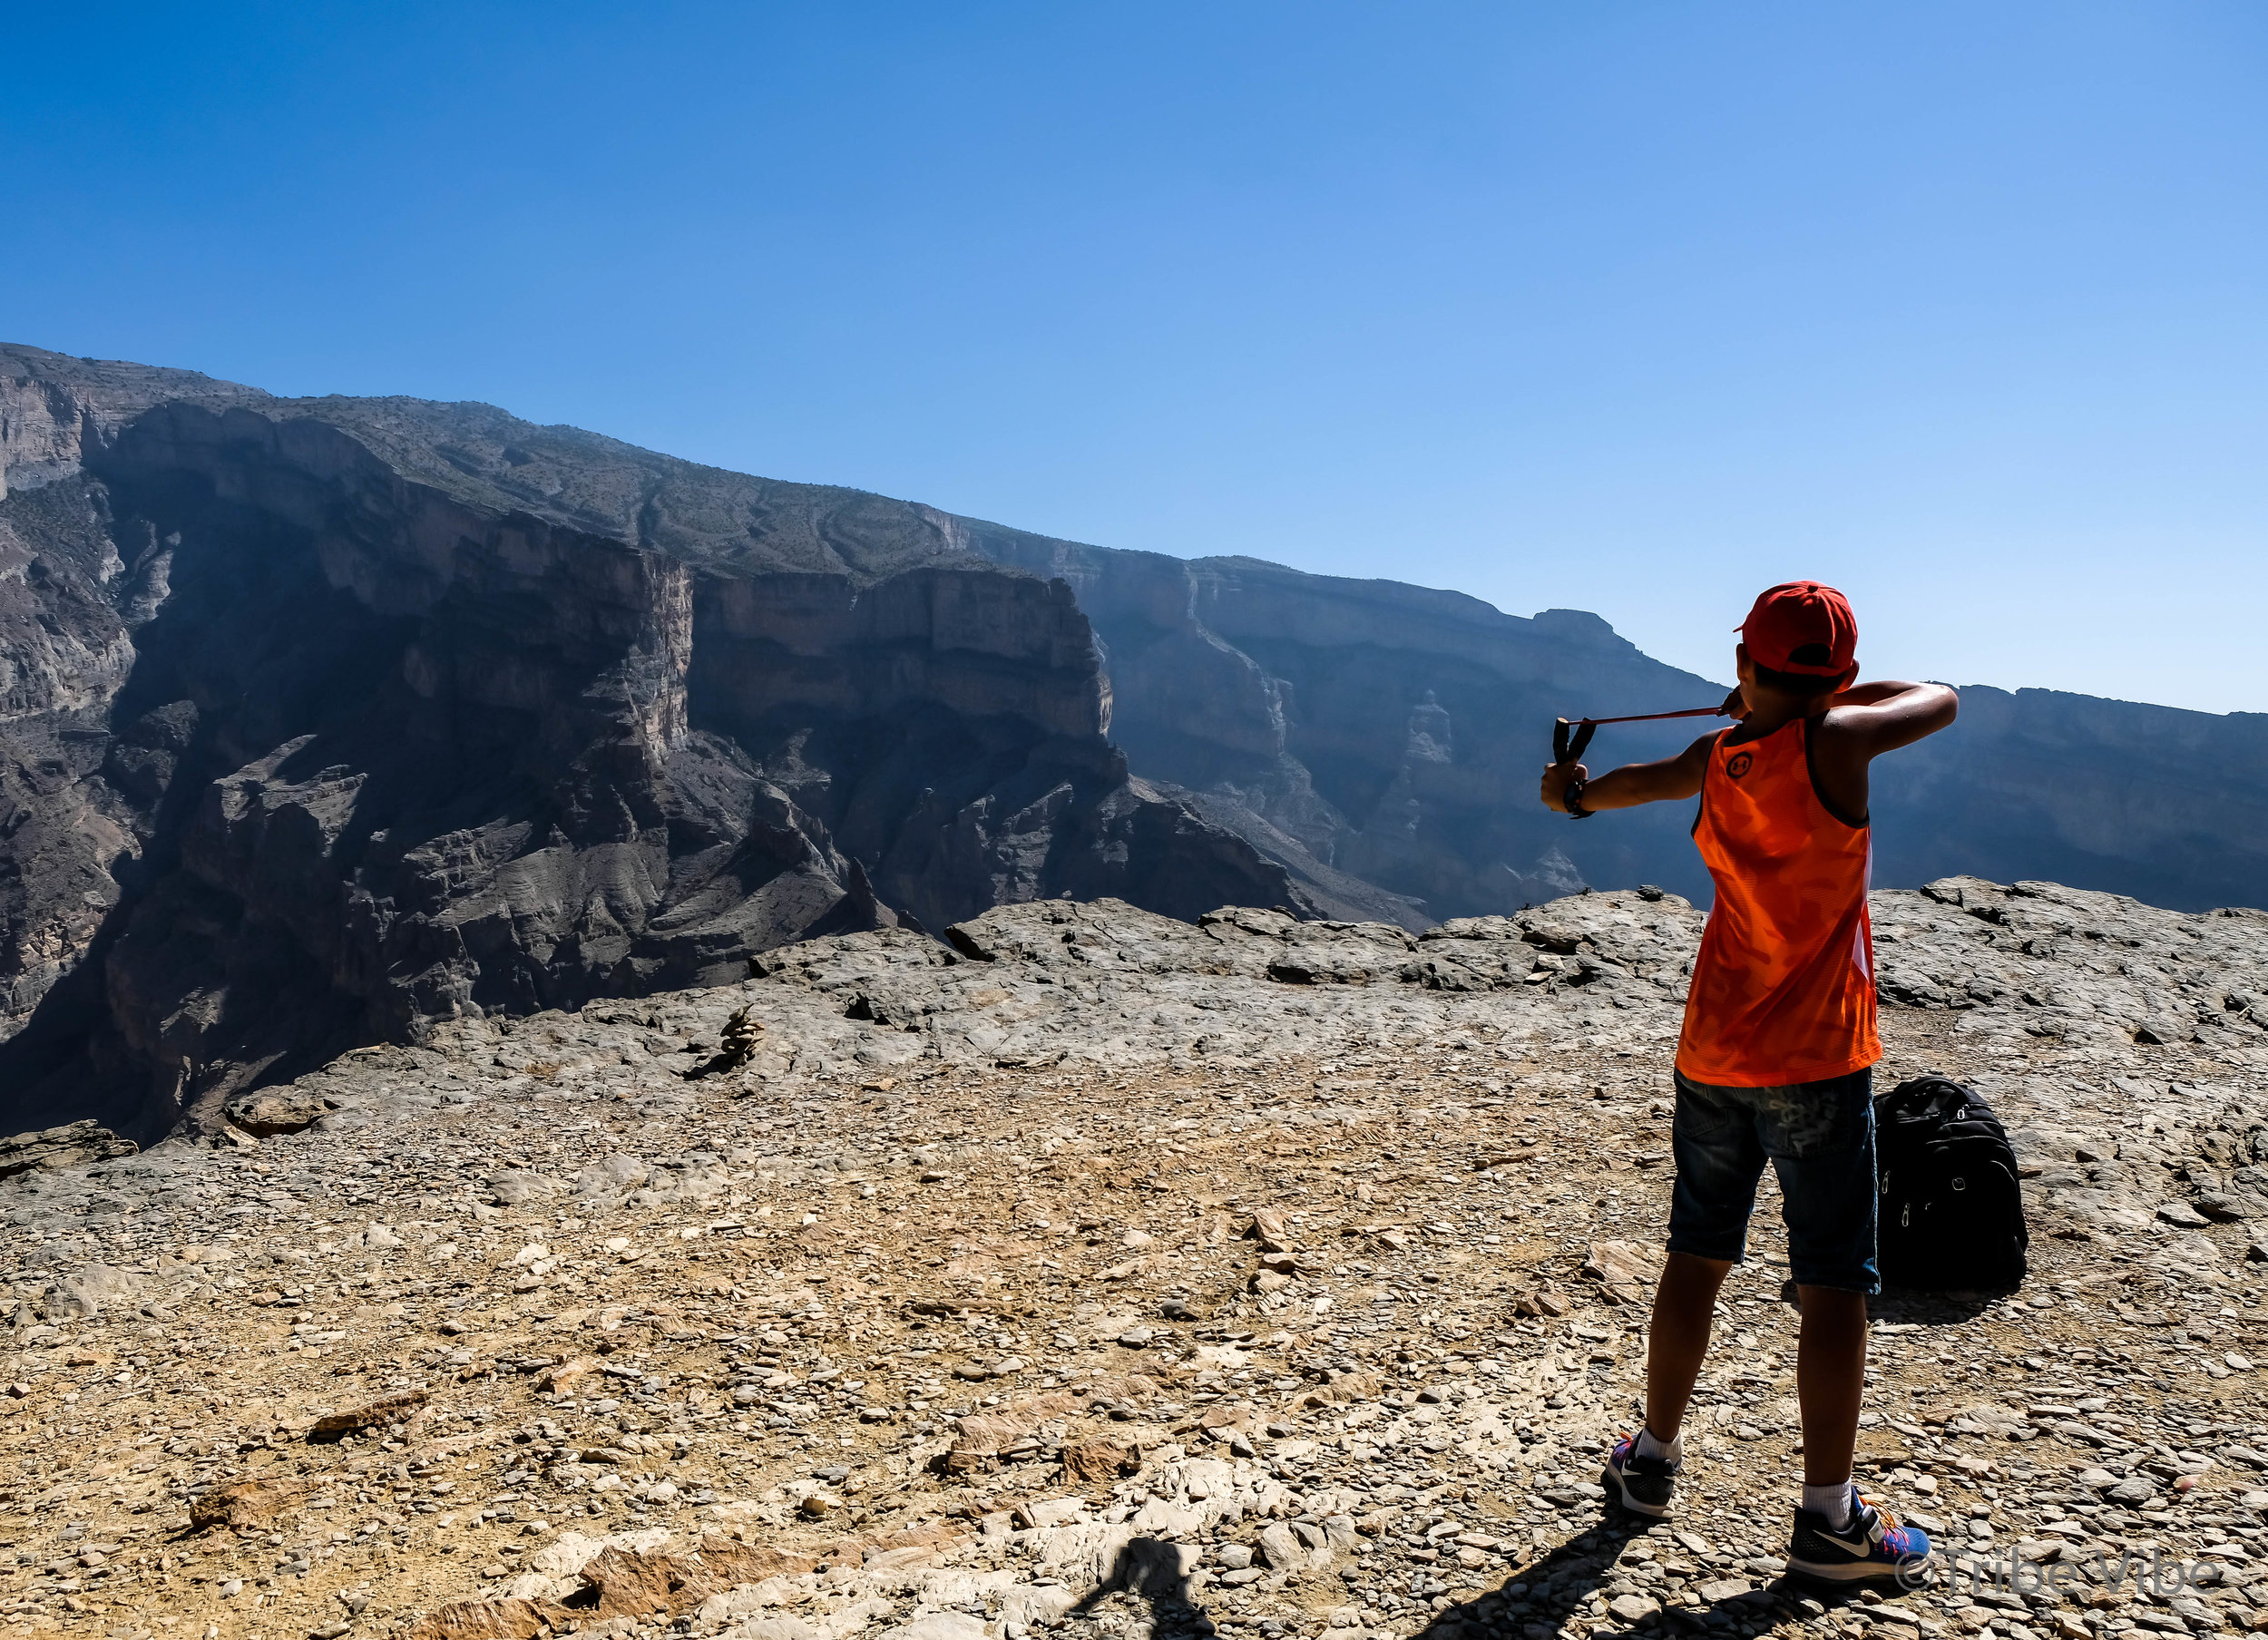 Learning how to use the slingshot. Balcony Hike, Jebel Shams, Oman.